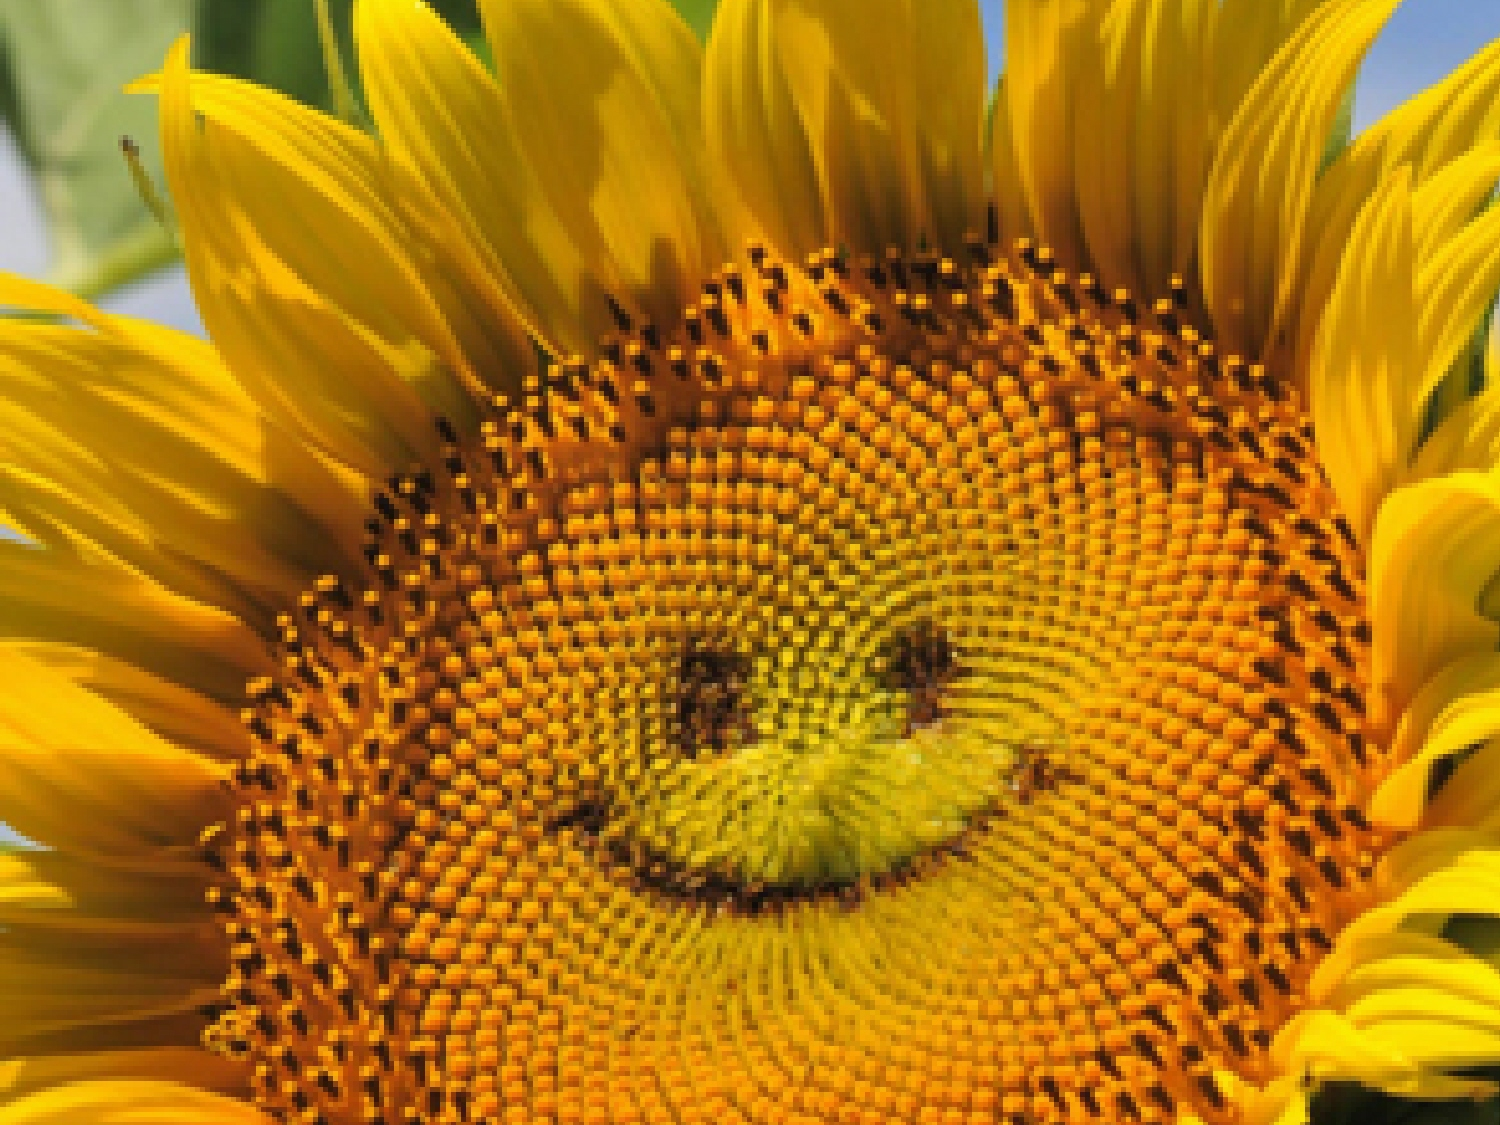 sunflower-smiley-face-1a2.jpg